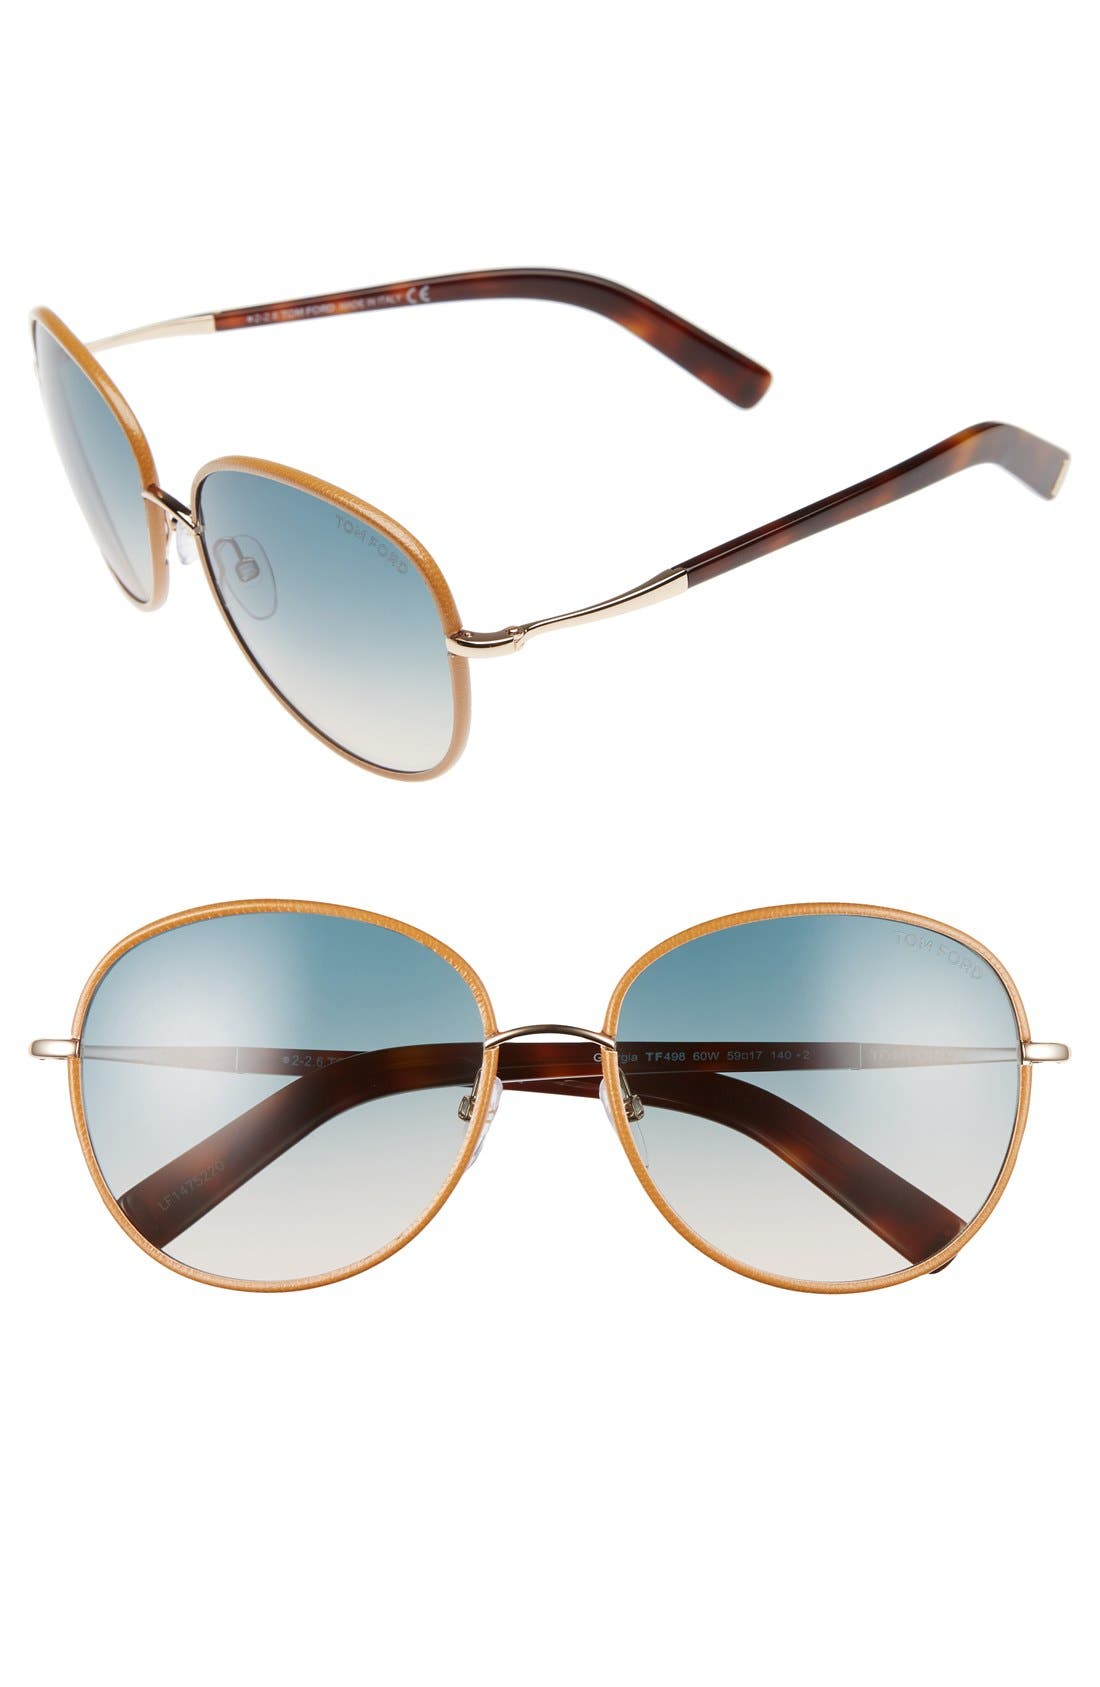 Alternate Image 1 Selected - Tom Ford Georgia 59mm Sunglasses